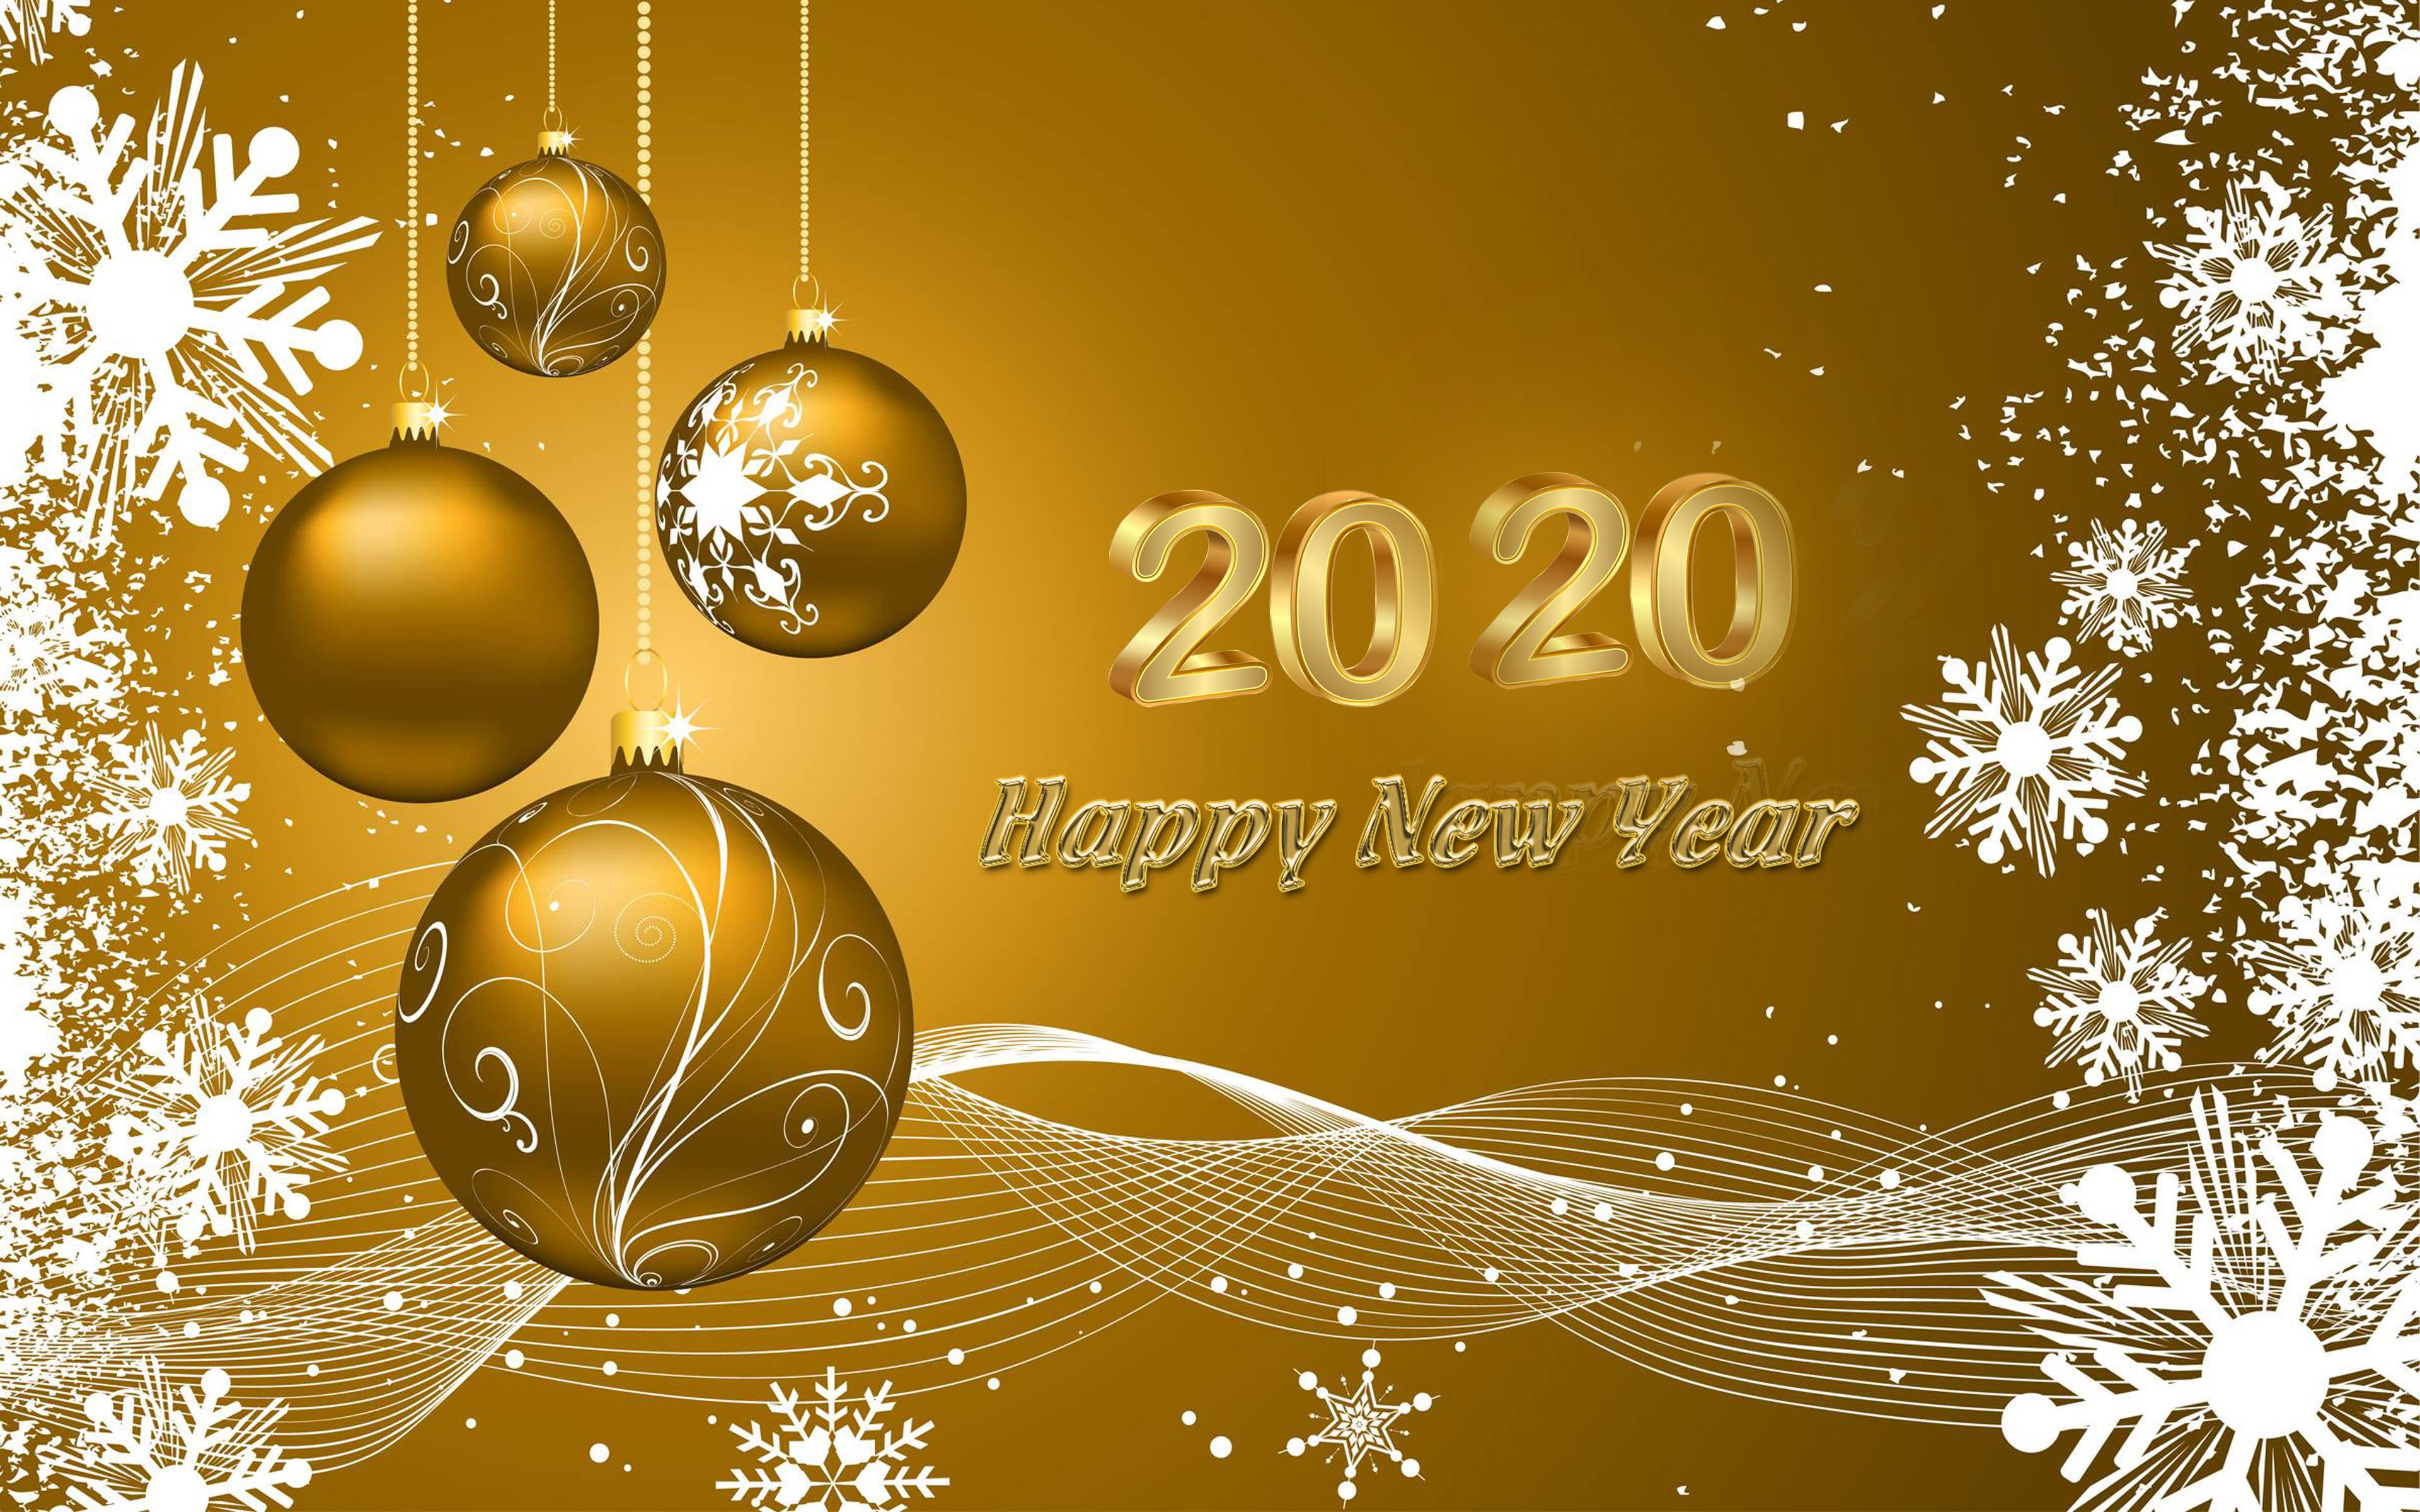 Happy New 2020 Year Wishes Gold Greeting Card Quotes 4k Ultrahd 3840x2400